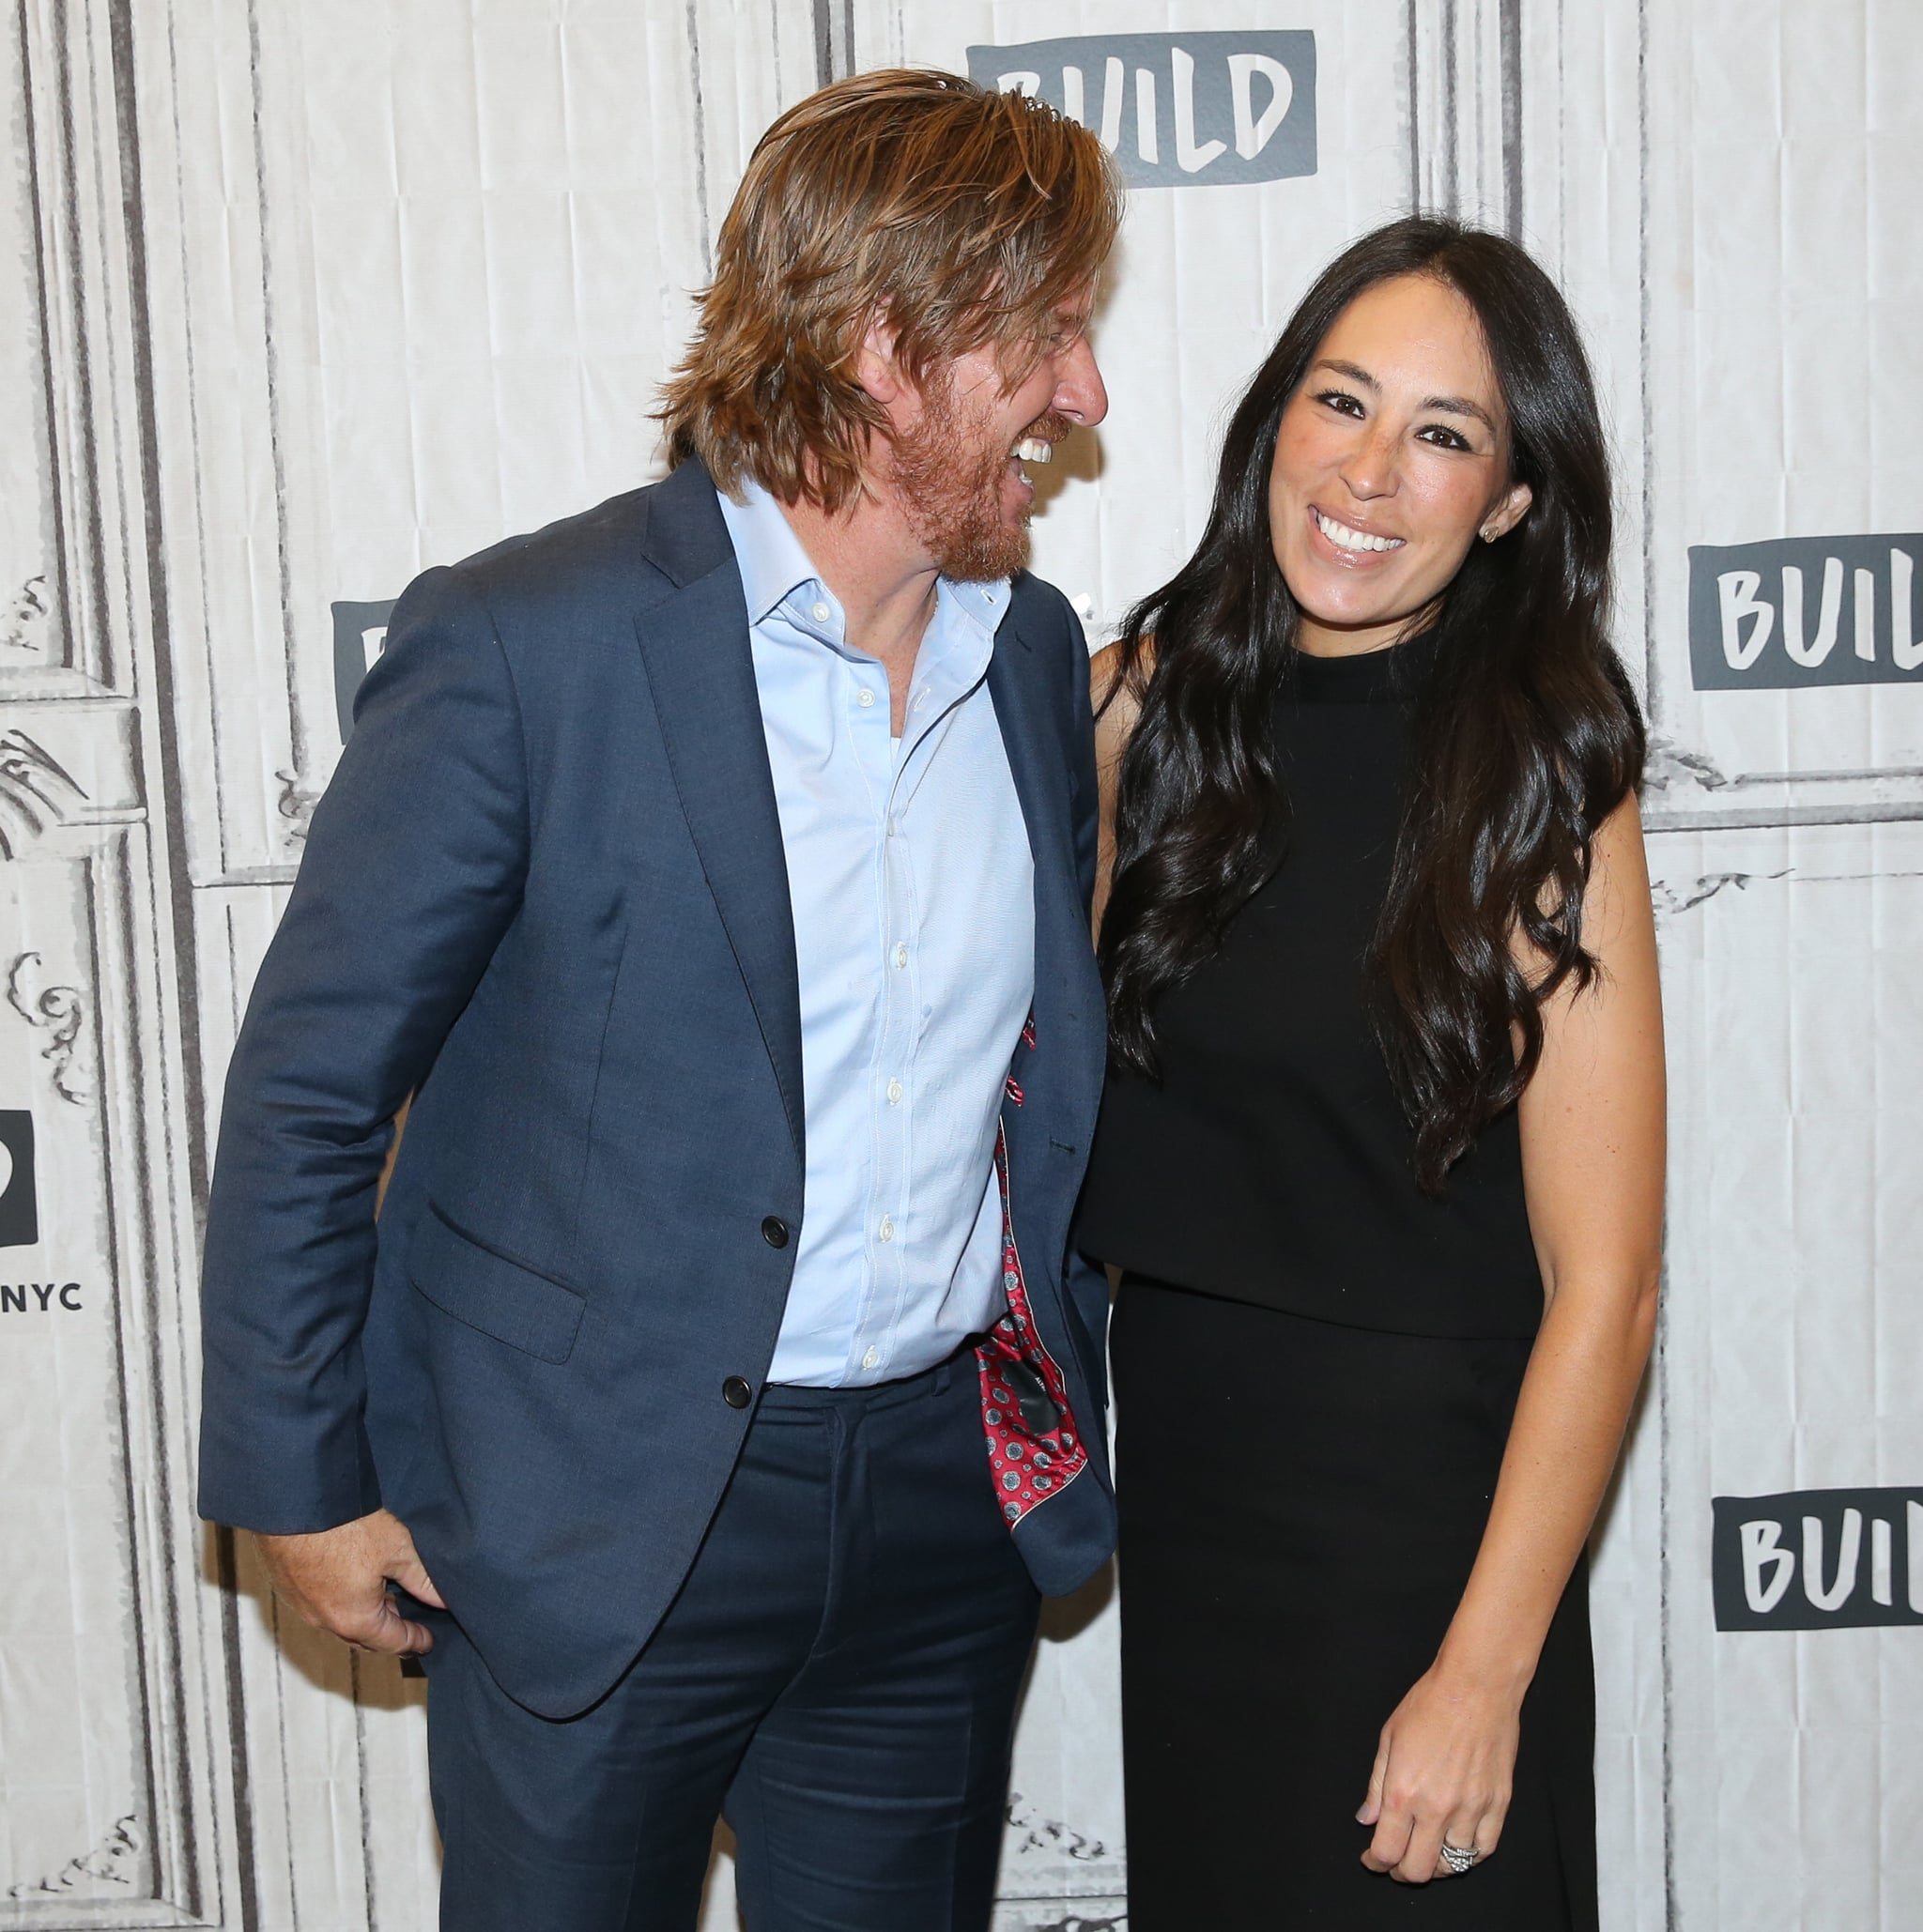 NEW YORK, NY - OCTOBER 18:  Chip Gaines and Joanna Gaines attend the Build Series at Build Studio on October 18, 2017 in New York City.  (Photo by Rob Kim/Getty Images)